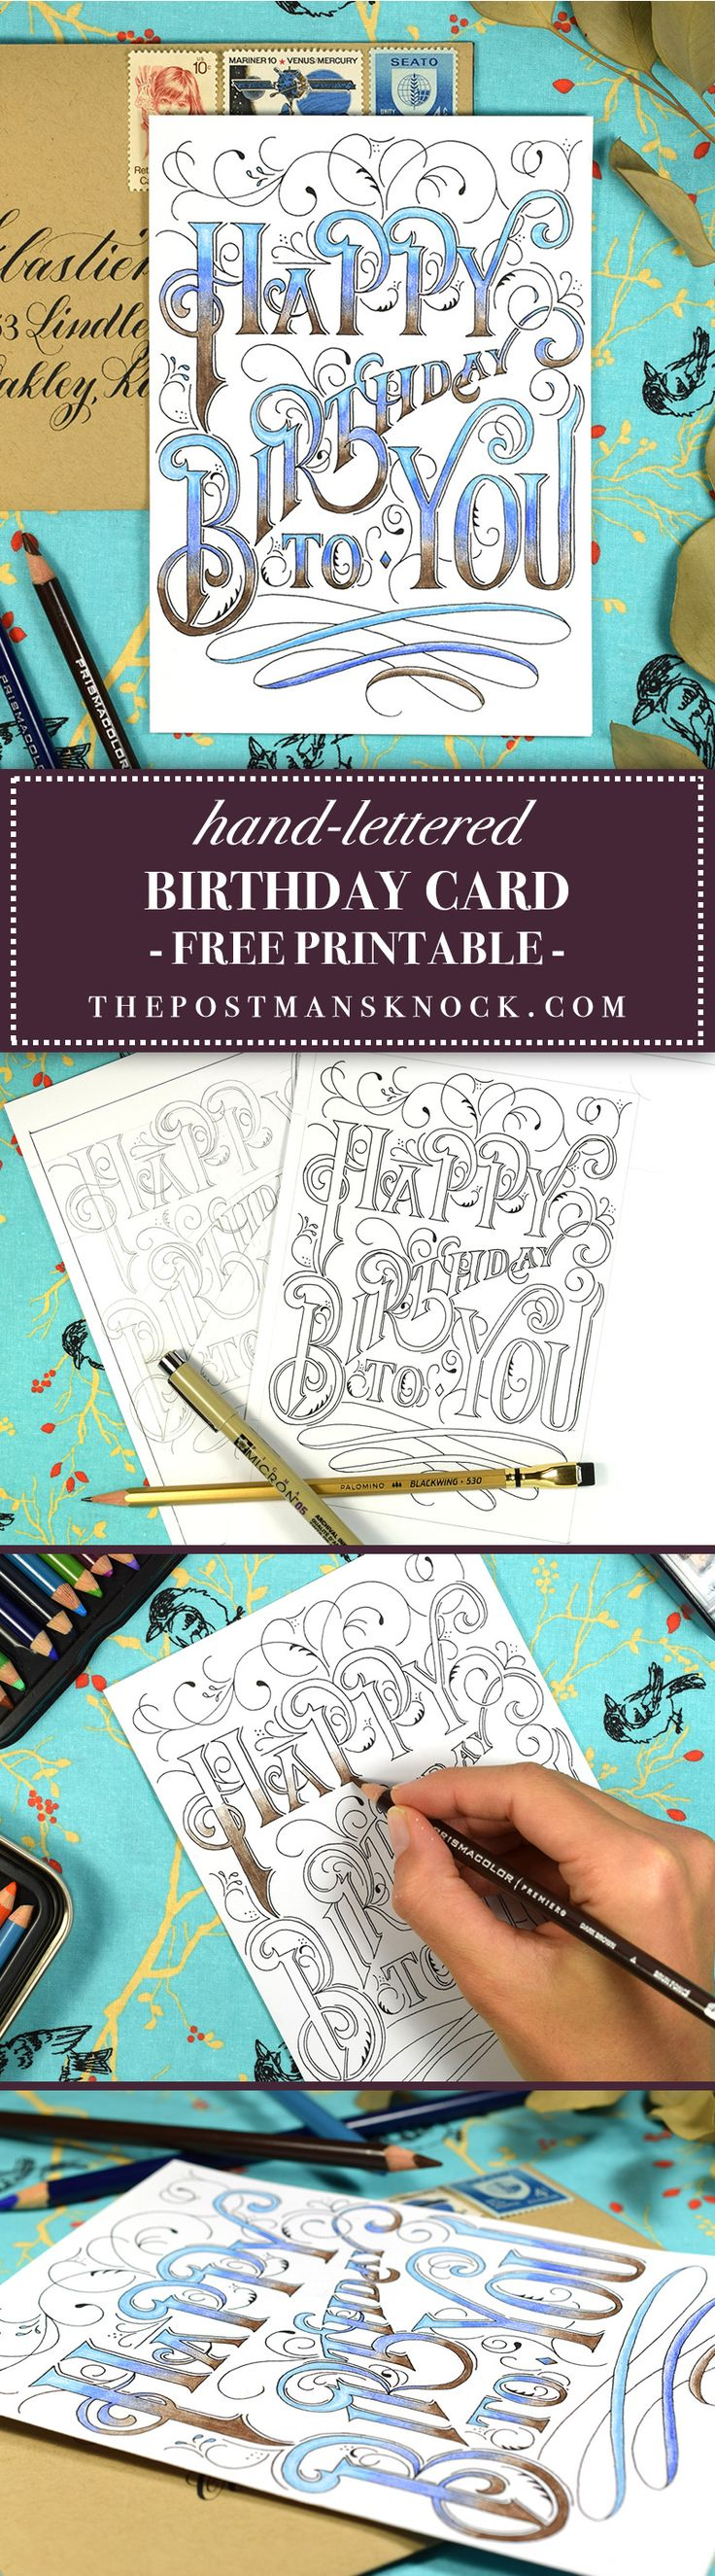 This birthday card provides the perfect short creative project! All you need to do is print it, add some color, and send it to your favorite birthday gal or guy. They'll appreciate the engaging design and fun color scheme!